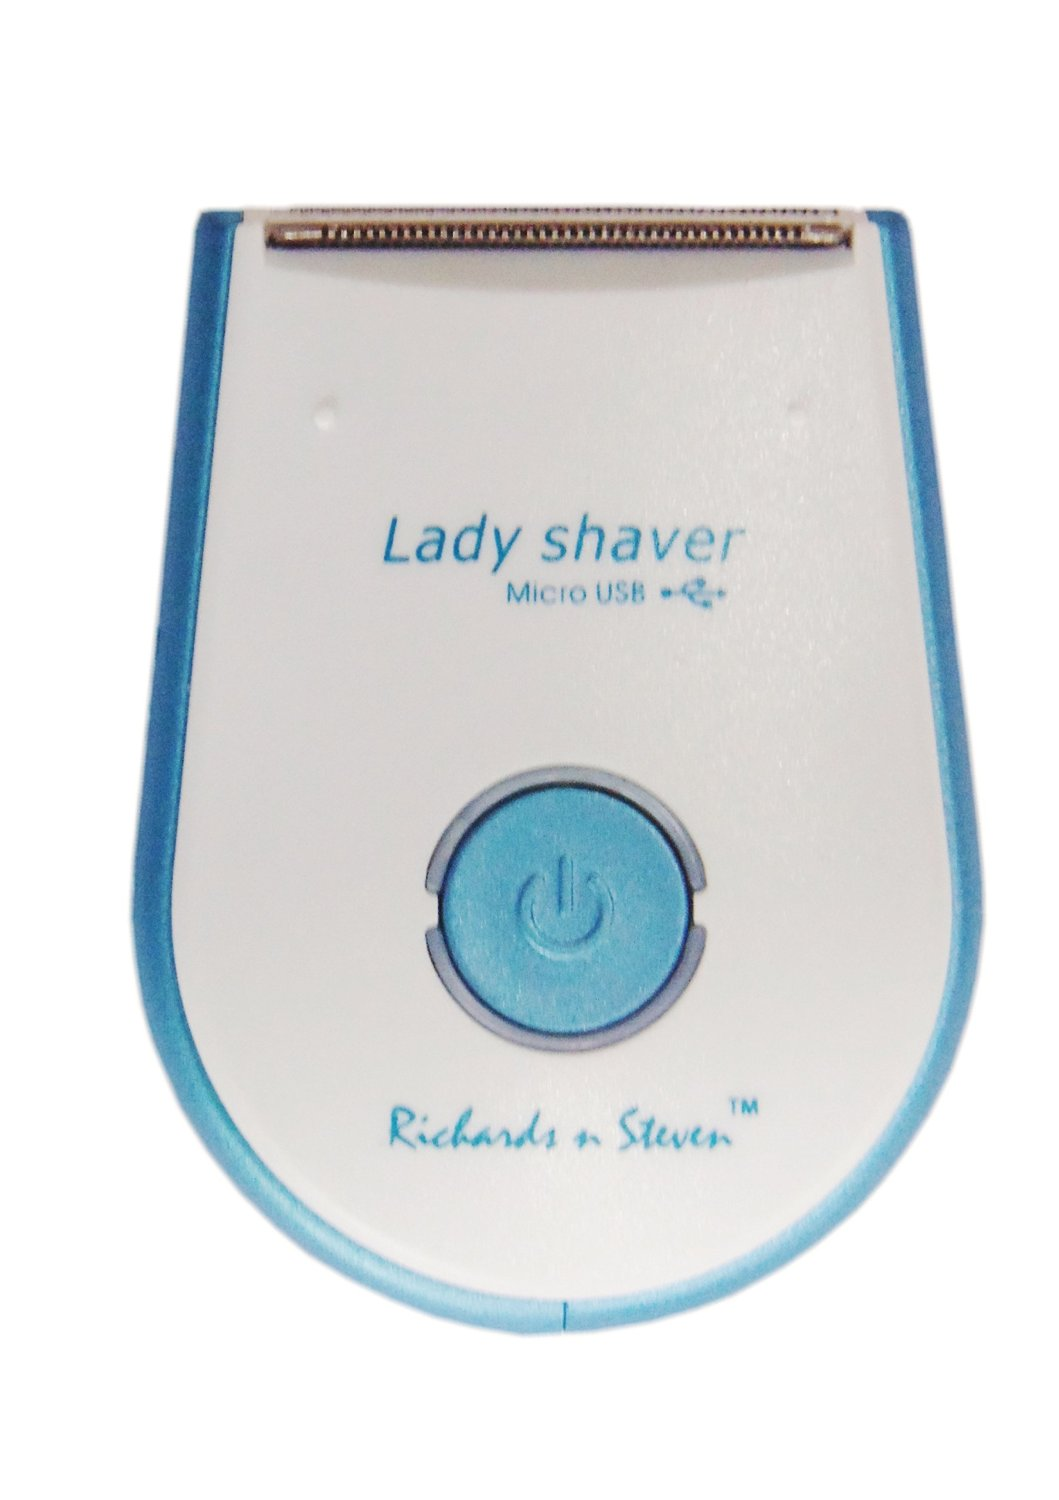 Best Ladies Shaver to buy online in India in 2018